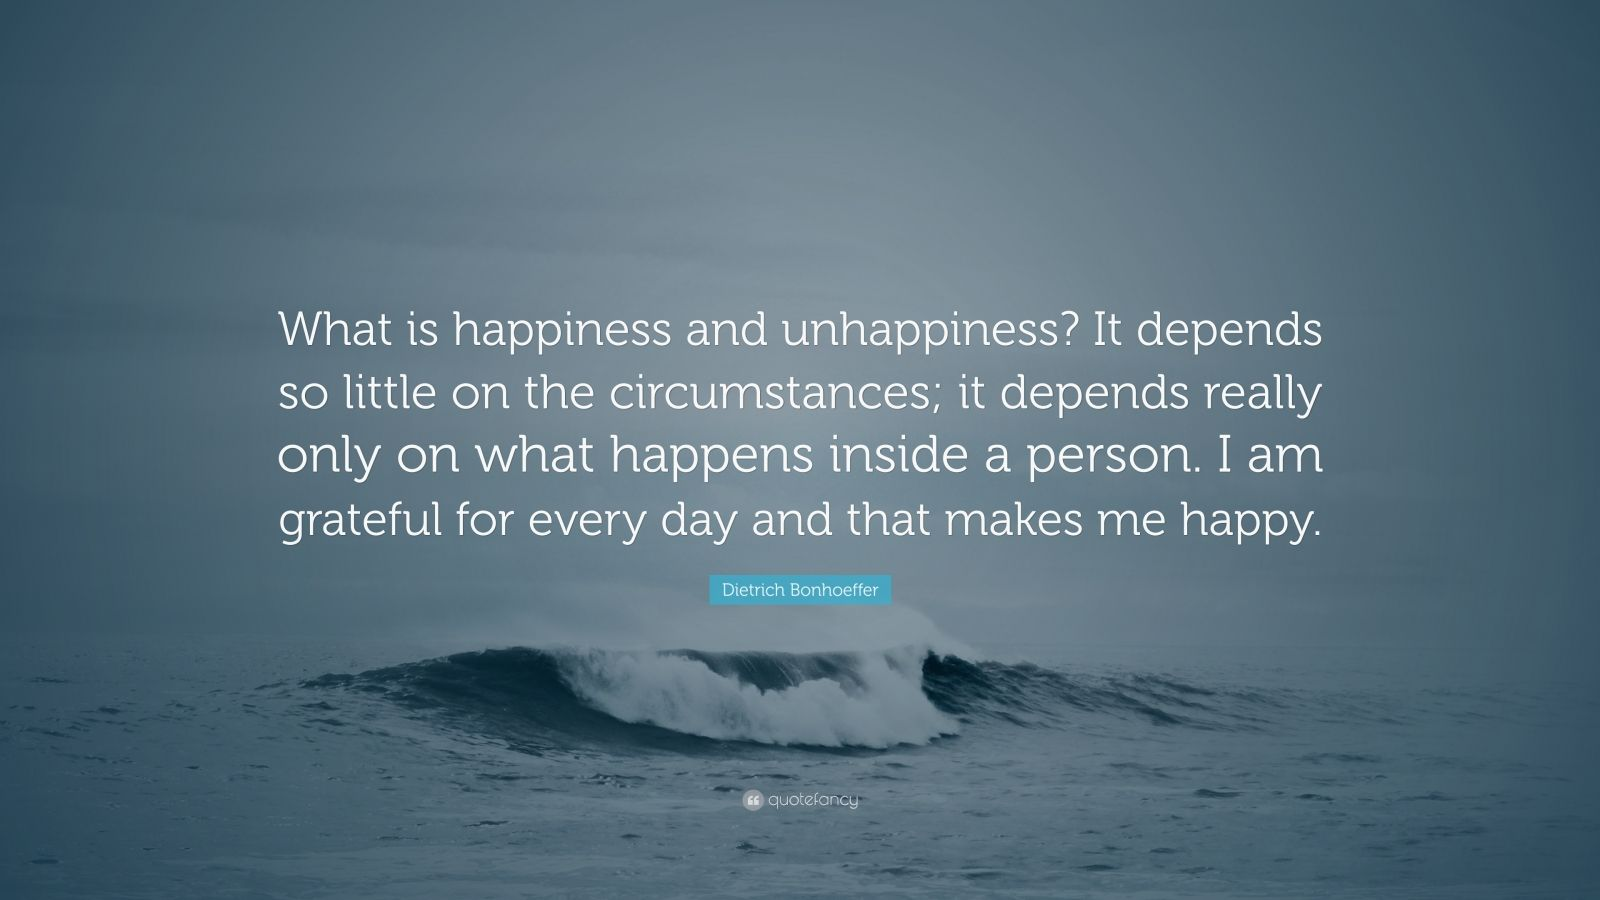 """Dietrich Bonhoeffer Quote: """"What is happiness and unhappiness? It depends so little on the circumstances; it depends really only on what happens inside a person. I am grateful for every day and that makes me happy."""""""